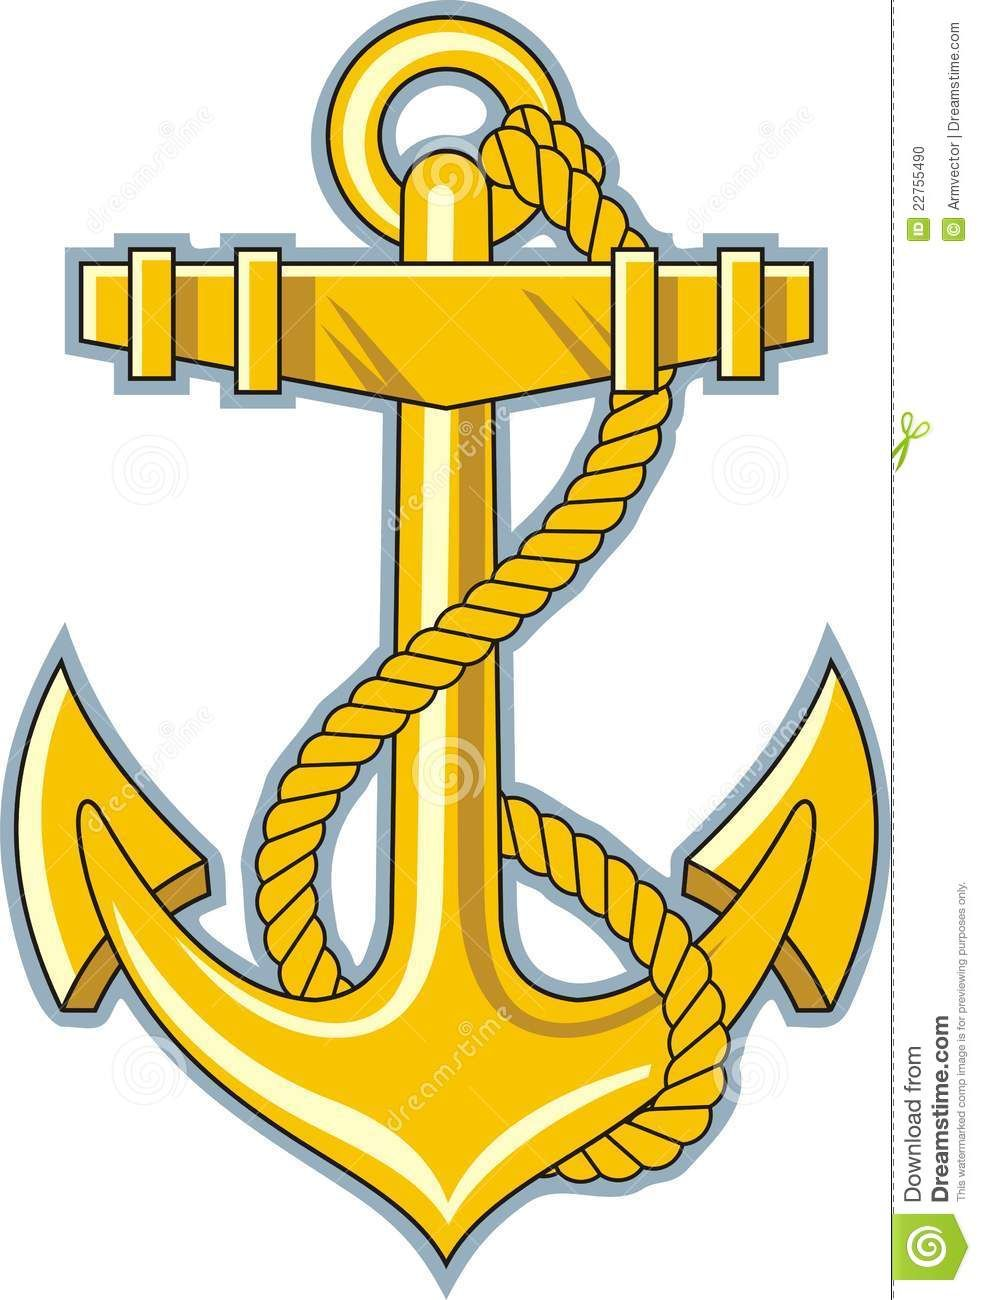 Gold Anchor Stock Photo Image 22755490 Clipart